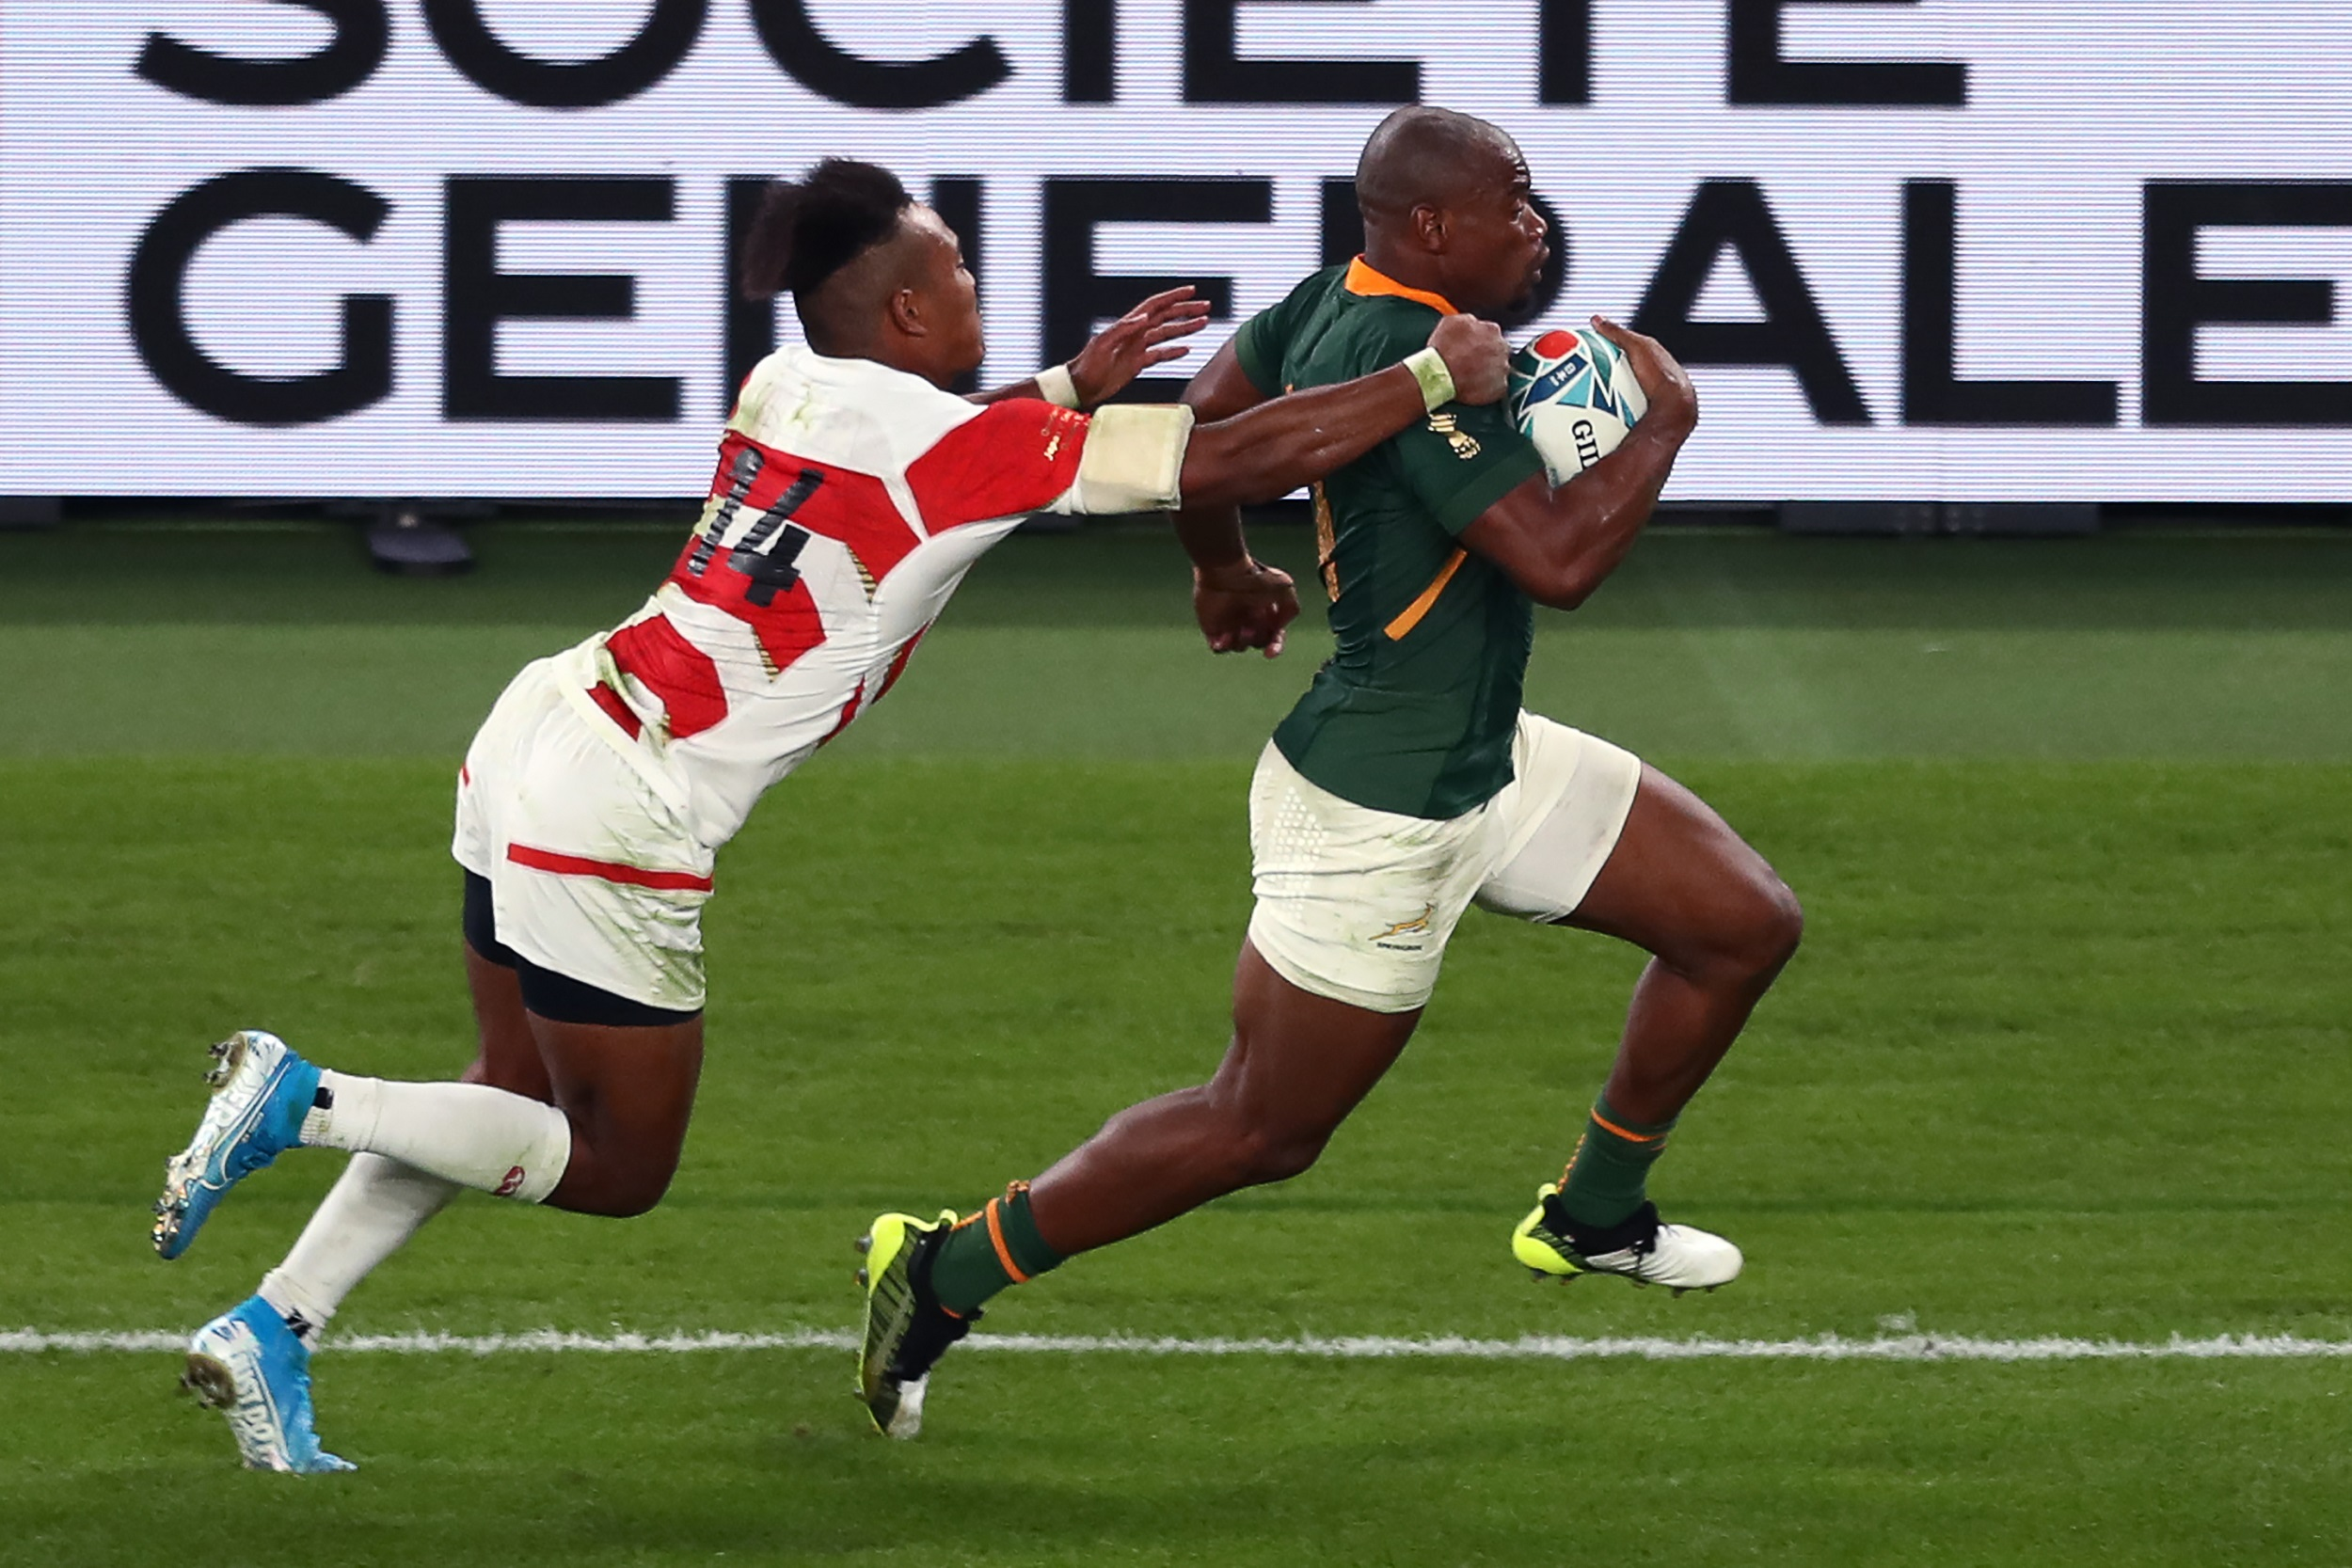 Makazole Mapimpi (R) runs to score a try during the Japan 2019 Rugby World Cup quarter-final match between Japan and South Africa.